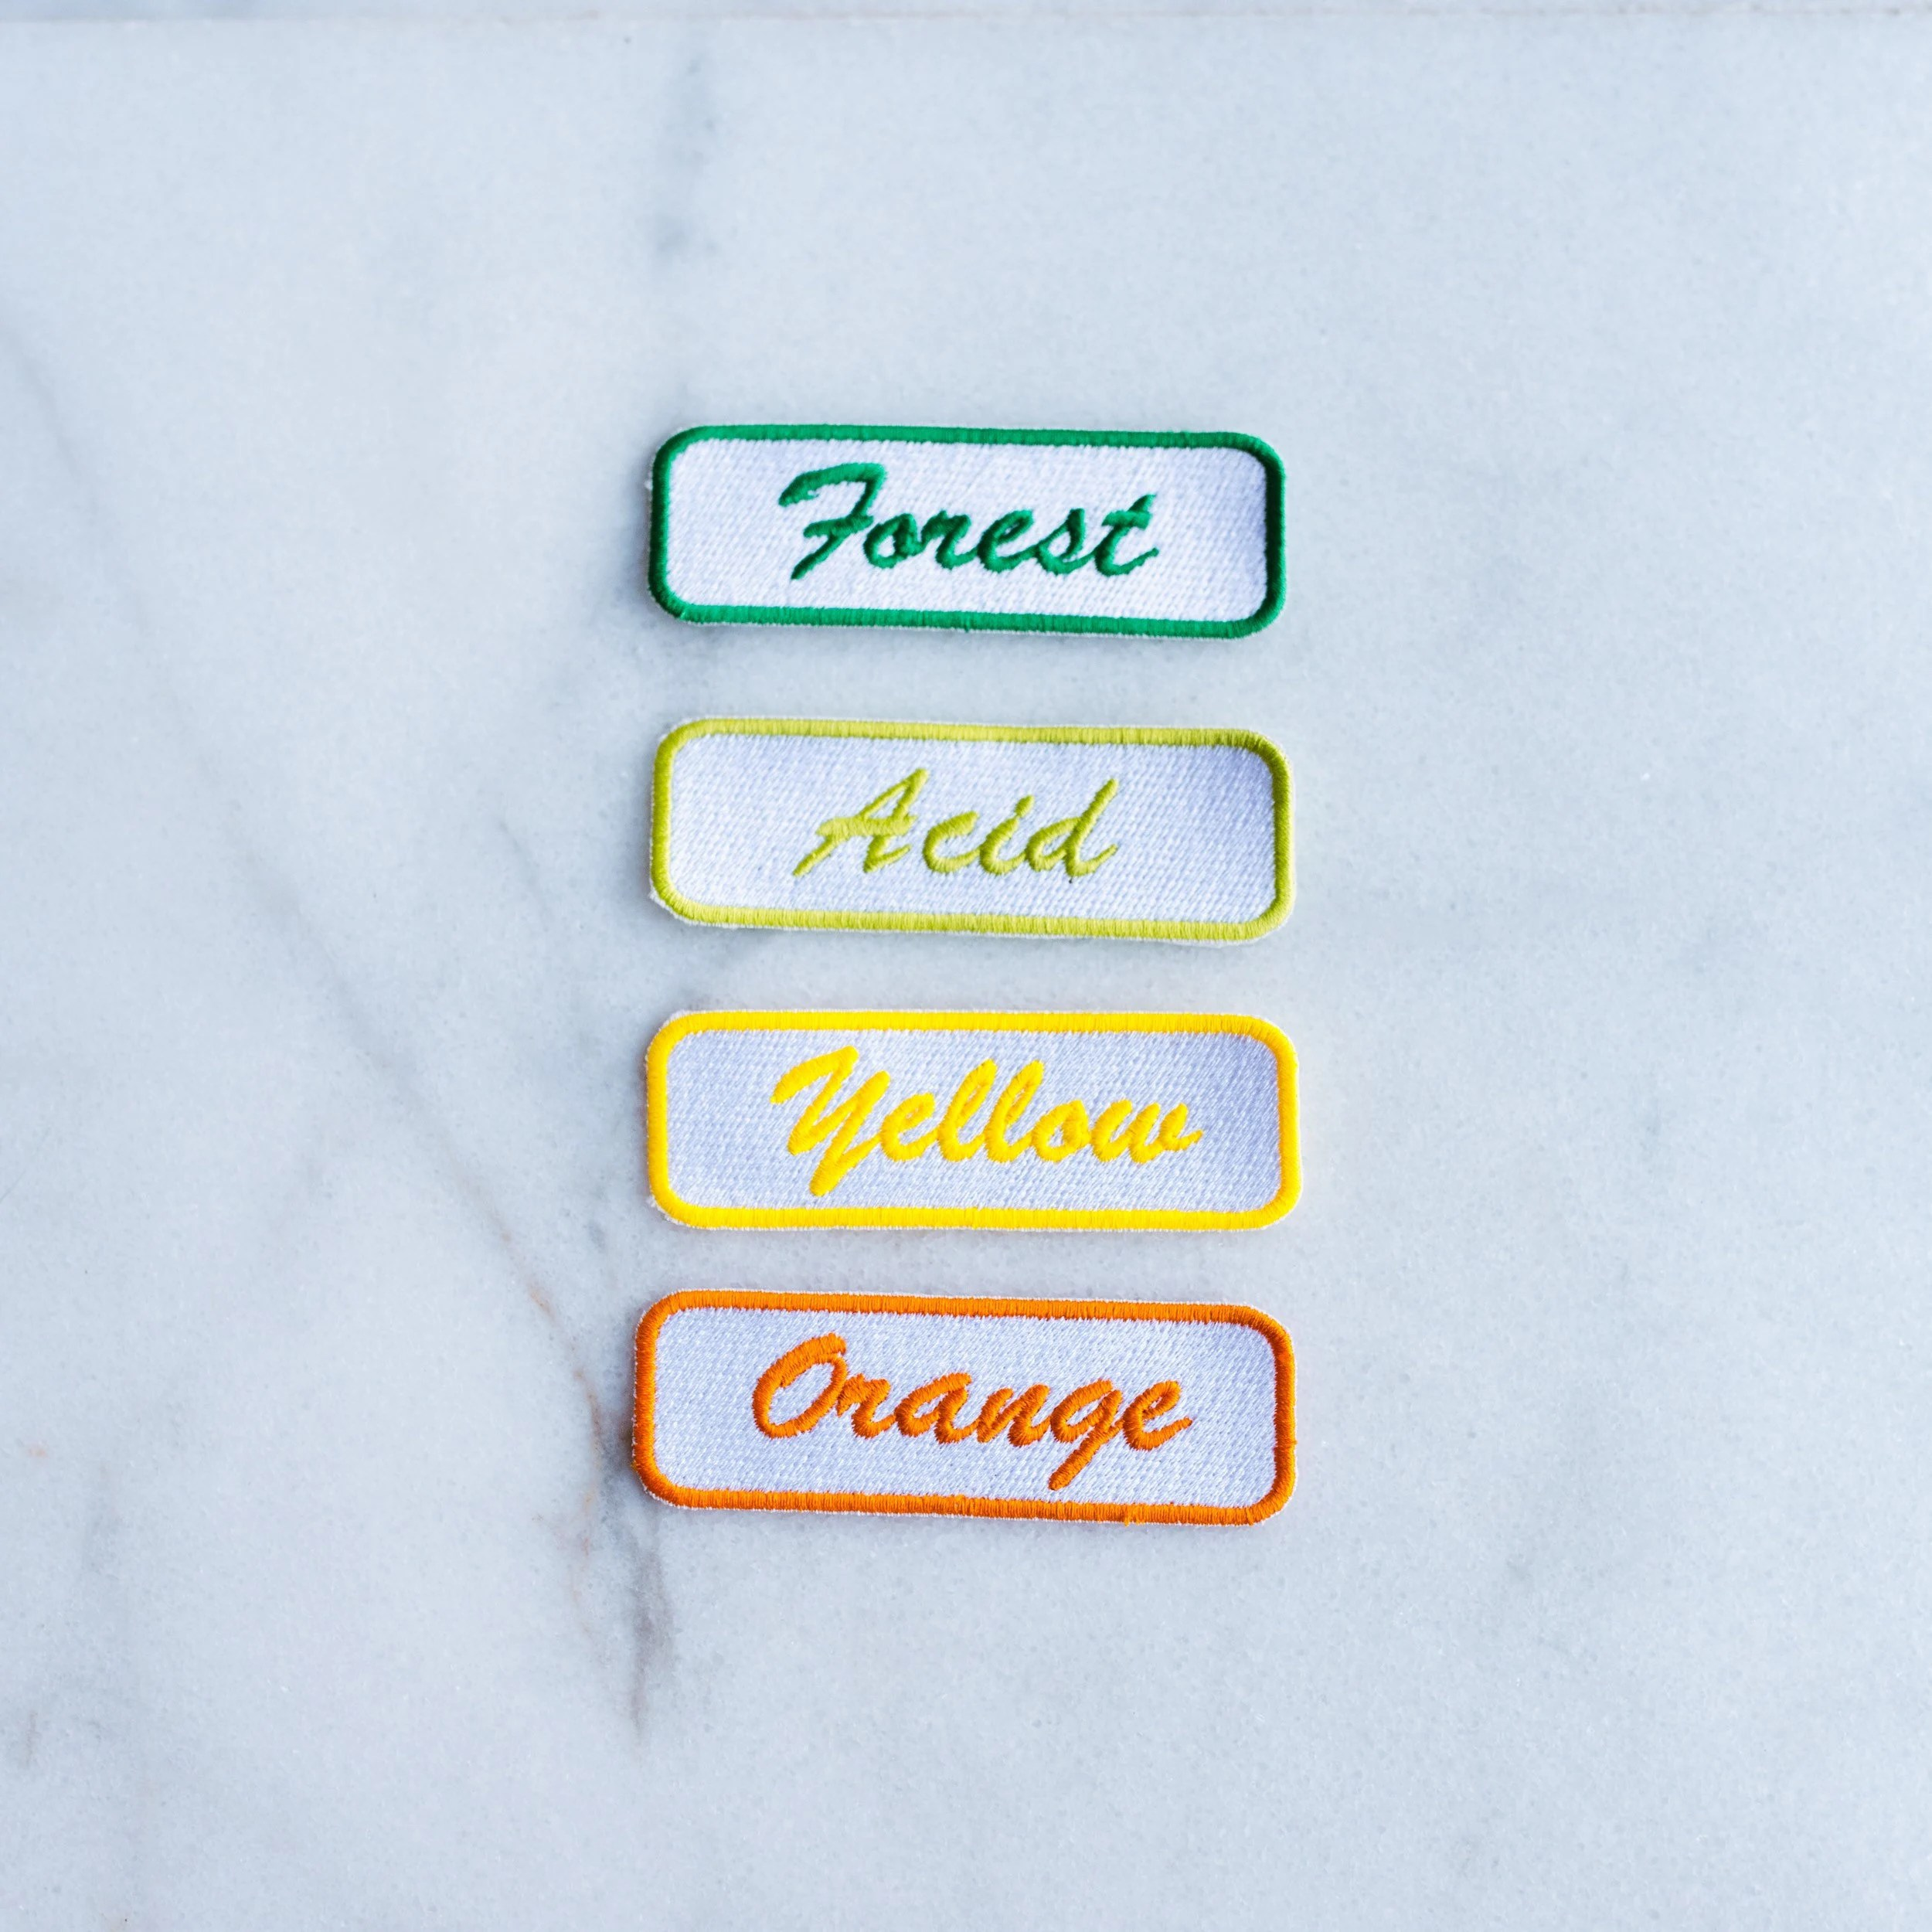 Custom Mechanic Name Patch  Name Tag Patch  Personalized Yellow